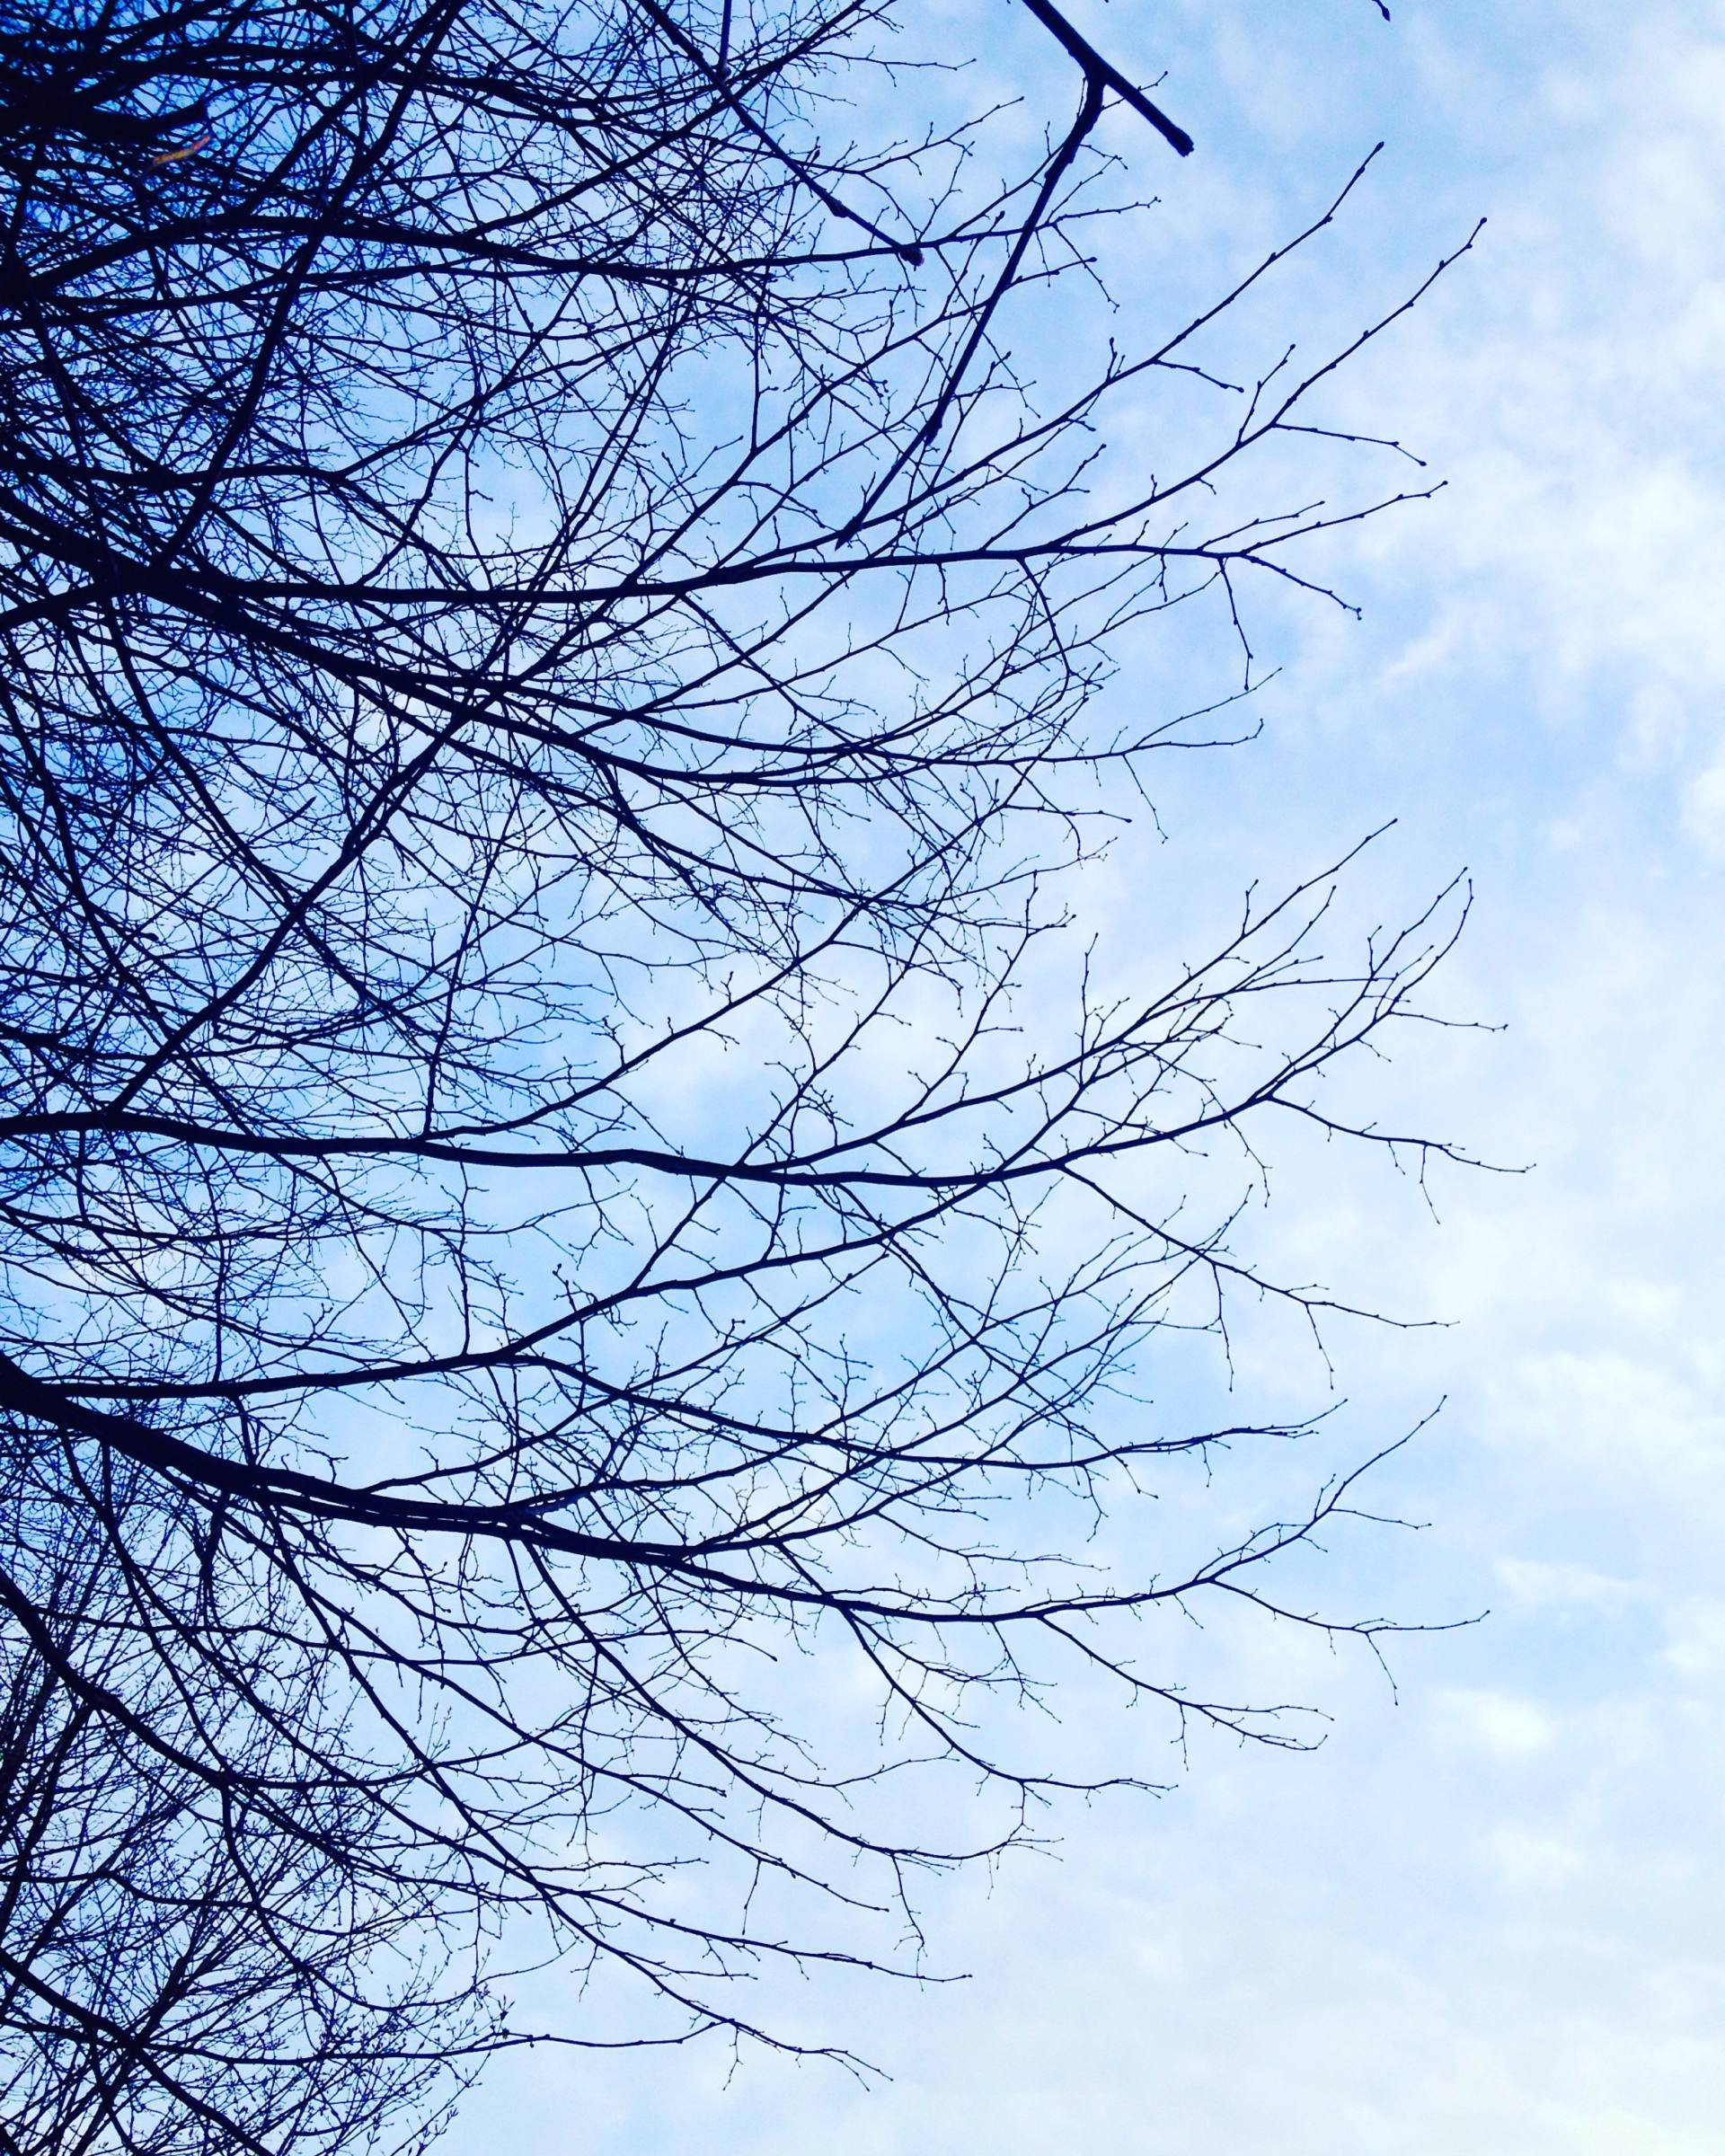 Morning run in Leeds with trees and blue skies